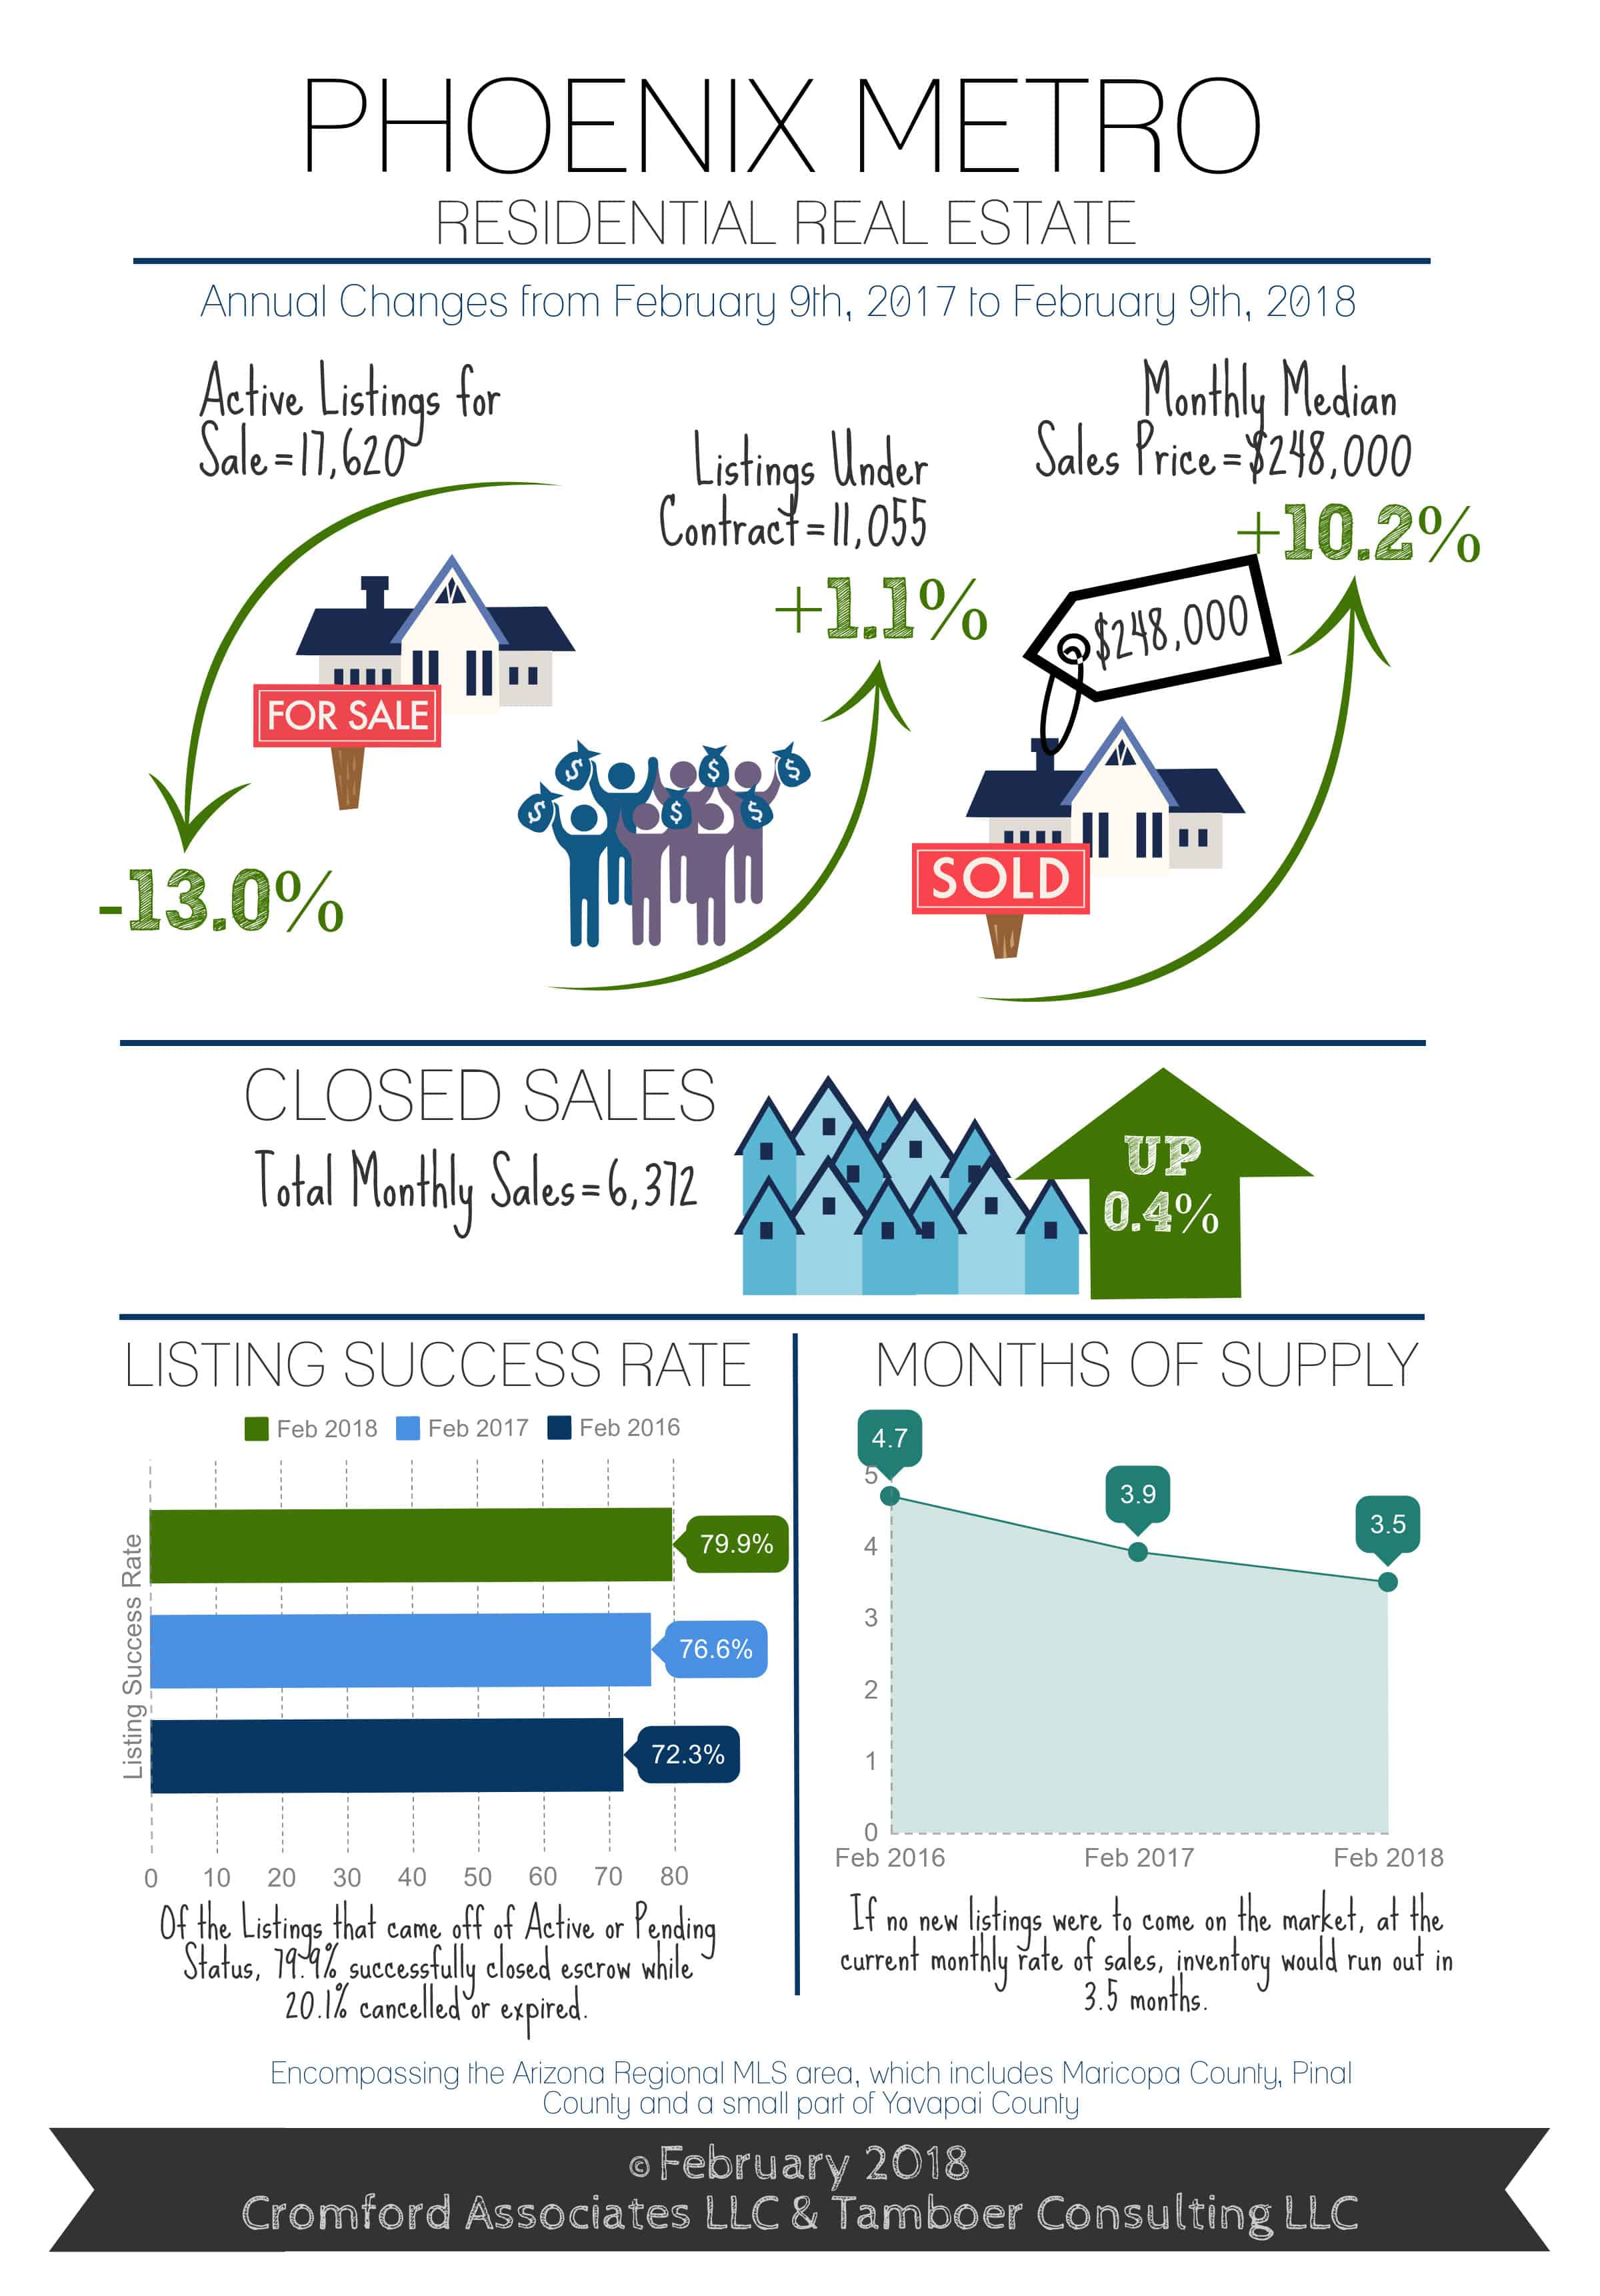 Metropolitan Phoenix real estate market info graphic. Active Listings are down 13%, Listings under contract are up 1.1%, and the monthly median Sales price is up to $248,000 (a 10.2% increase).